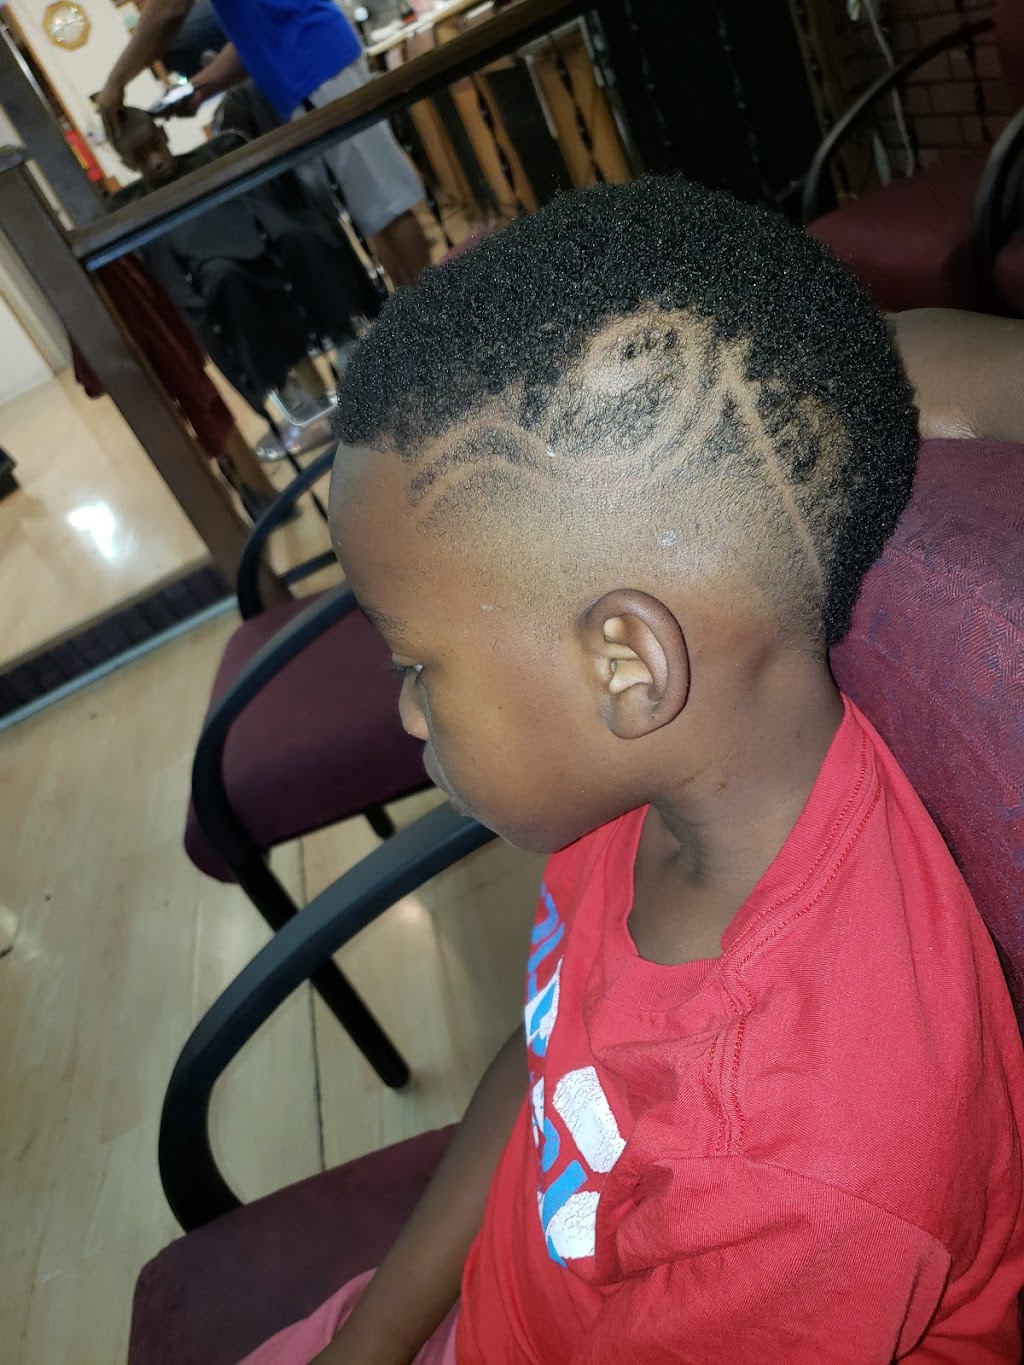 Top of the Line Barber Shop - hair care  | Photo 1 of 7 | Address: 4390 N 27th St, Milwaukee, WI 53216, USA | Phone: (414) 449-0351